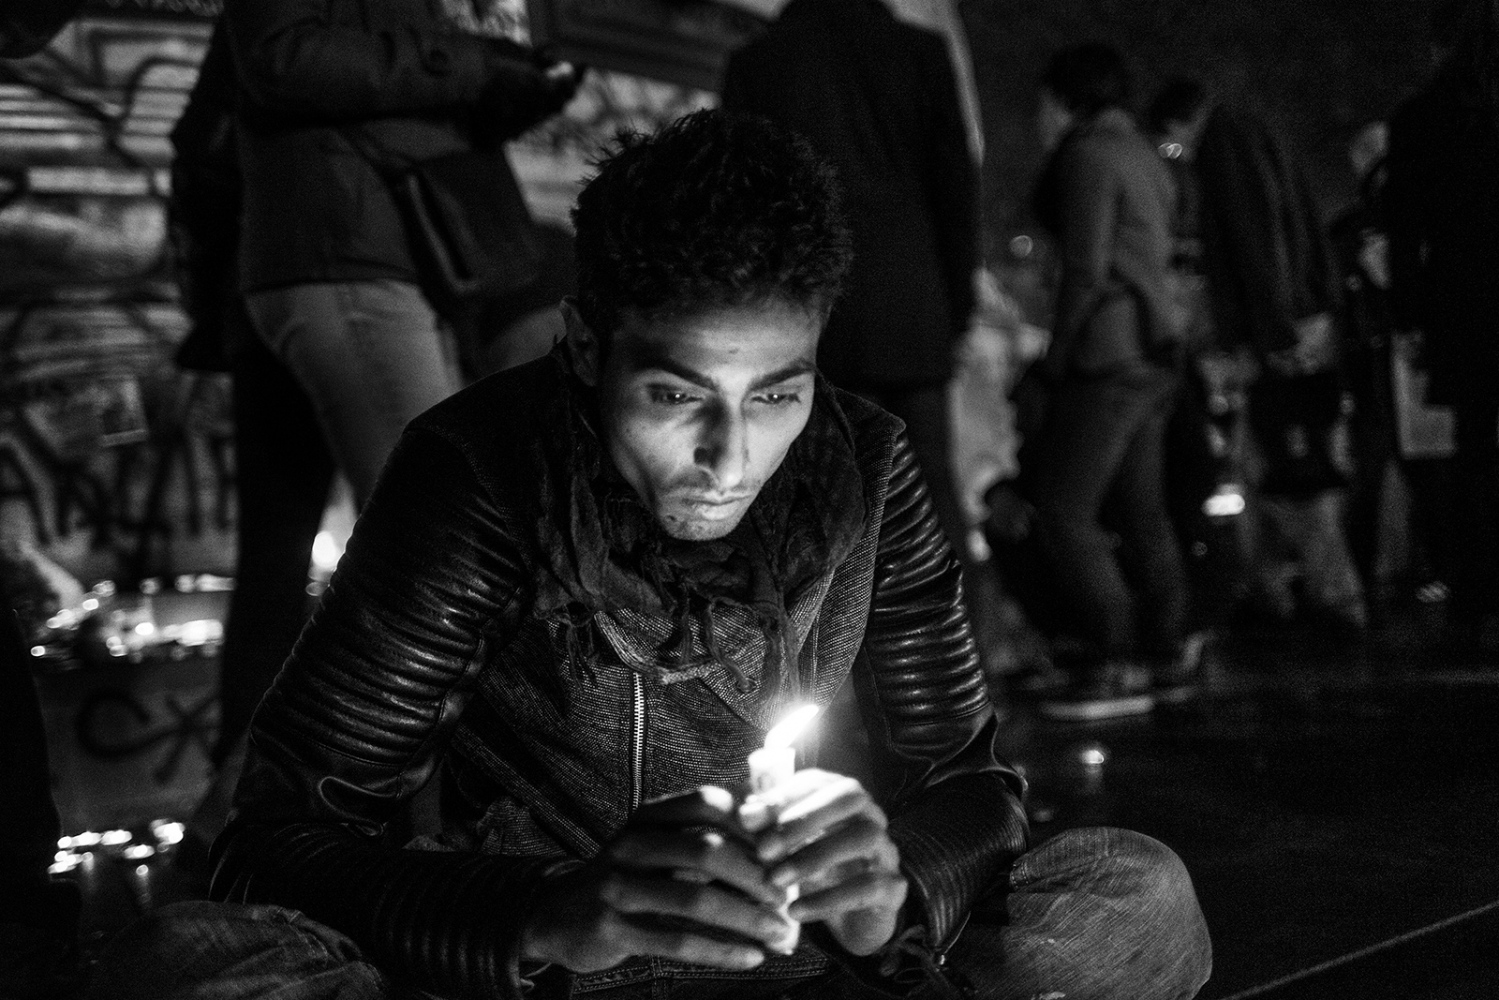 Boy lights a candle in front of the statue in Place de la Republique. Paris, France, Place de la Republique. 14/11/2015. The aftermath of the terrorism attacks in Paris on 13/11/2015.Despite the ban on public meetings, many people gathered at the Place de la Republique to commemorate the victims of the terrorist attacks.